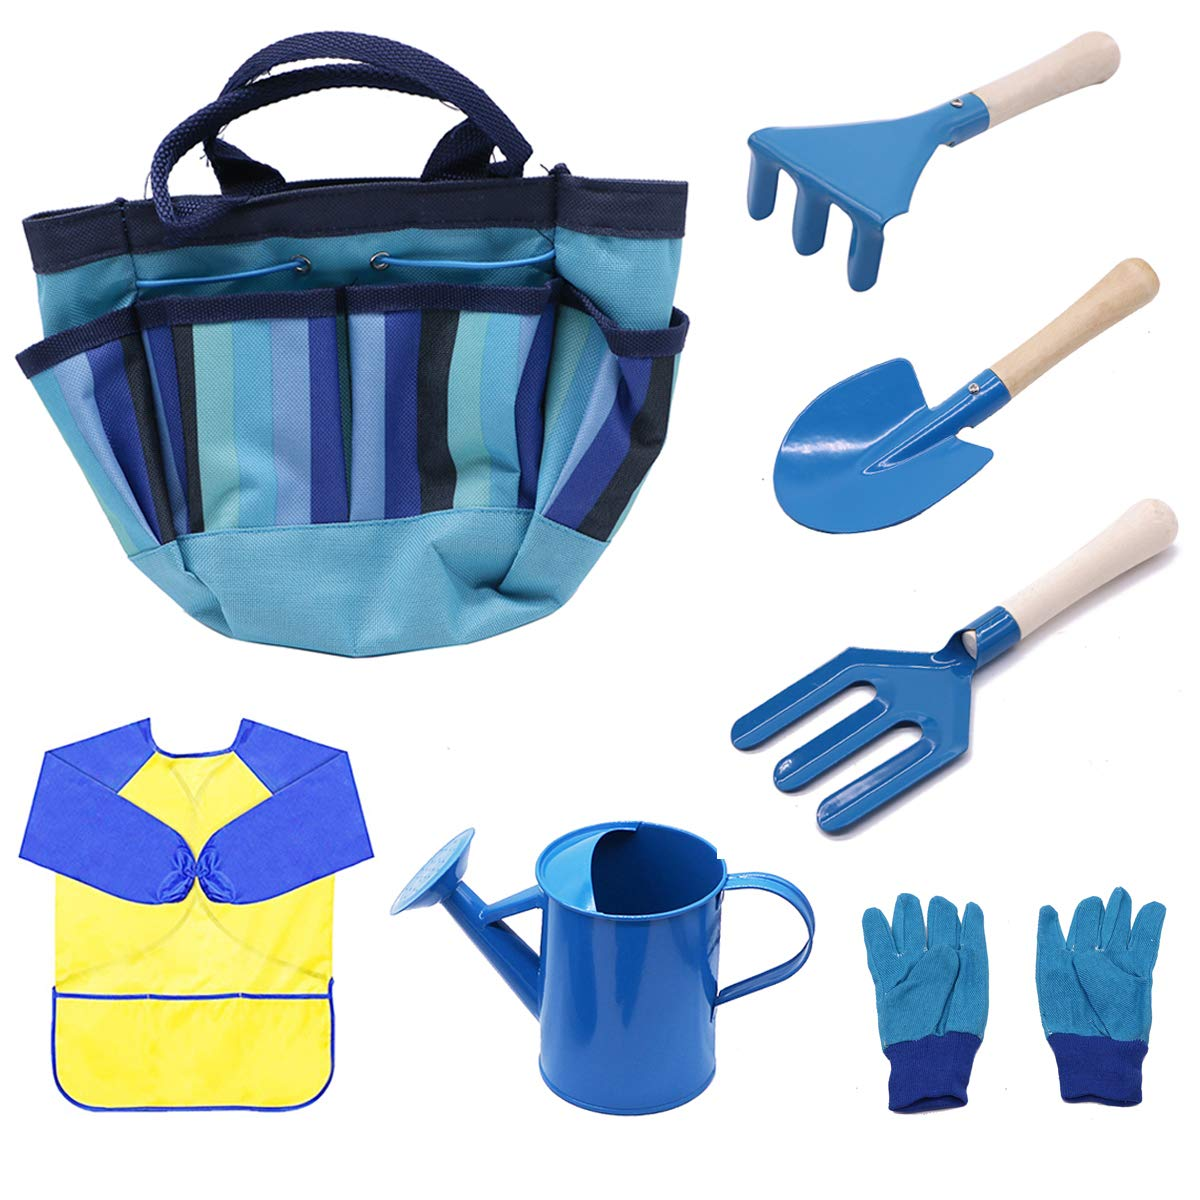 MoTrent Children Gardening Tools Set, 7 PCS Kids Garden Tool Toys Including Watering Can, Gardening Gloves, Shovel, Rake, Trowel, Garden Toe Bag and Kids Smock